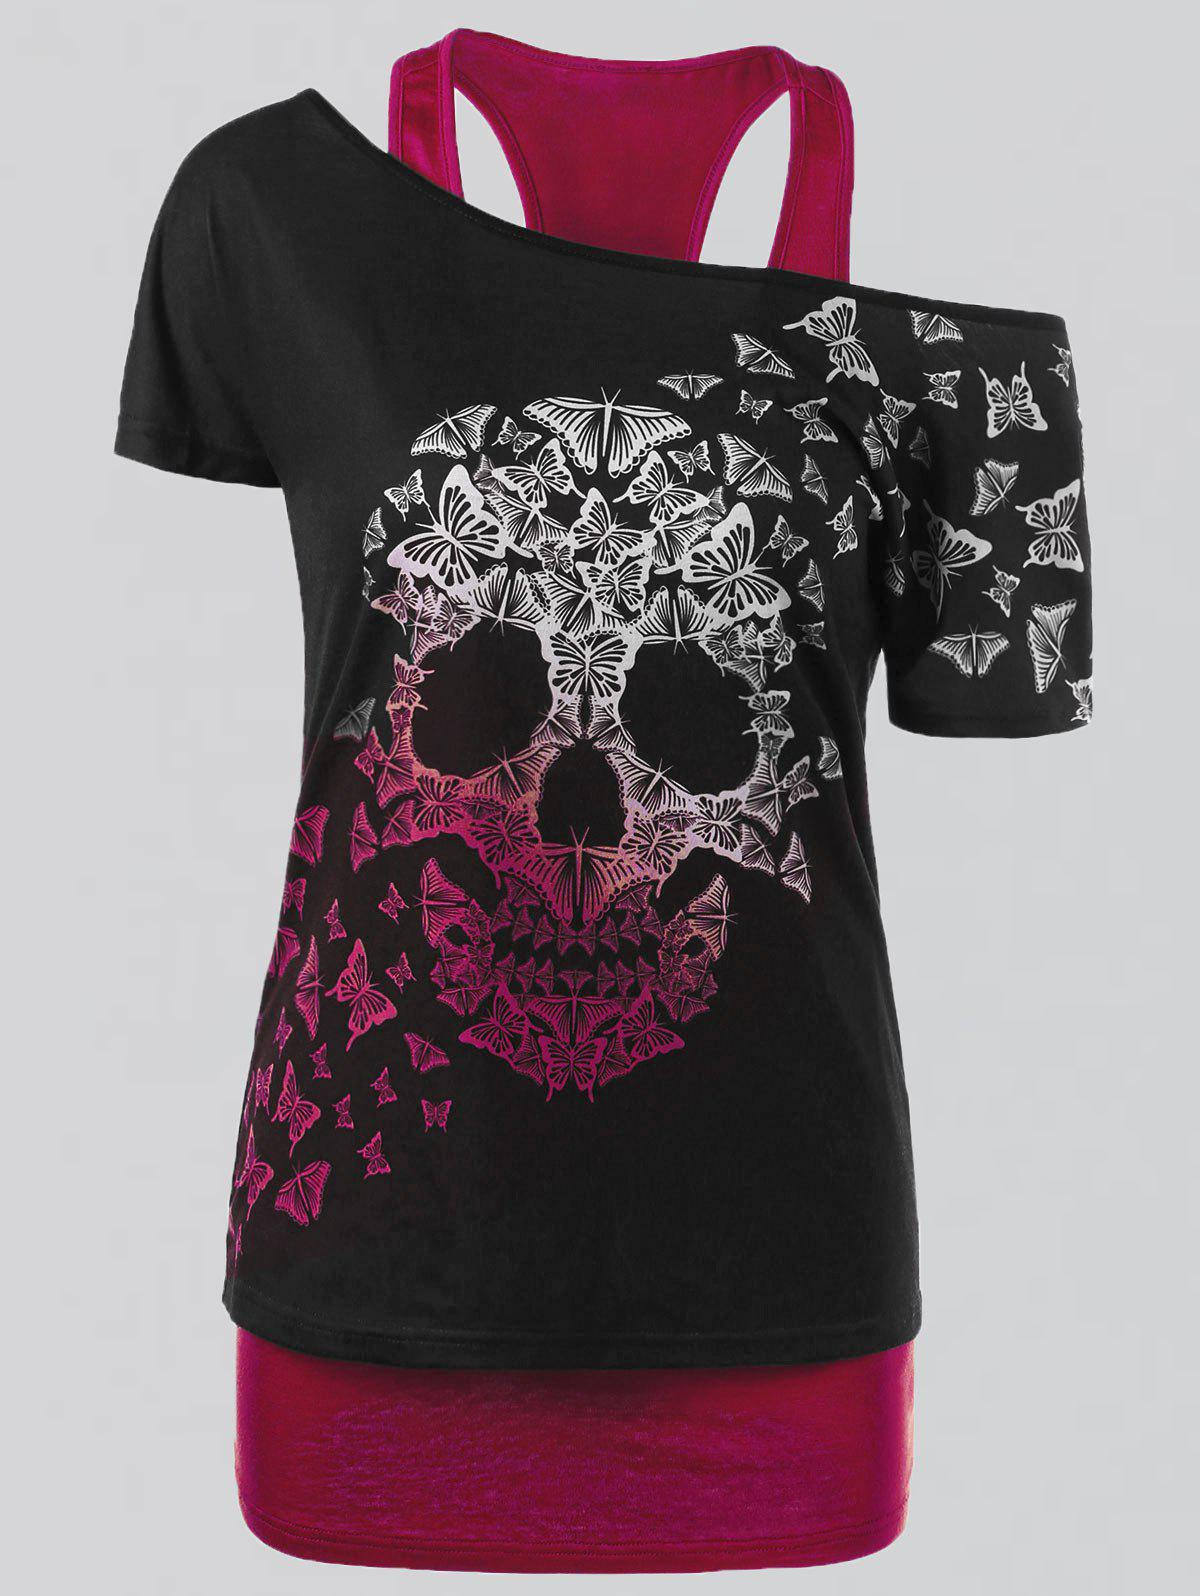 Plus Size Butterfly Skull T-shirt and Tank TopWOMEN<br><br>Size: 3XL; Color: RED; Material: Polyester,Spandex; Shirt Length: Regular; Sleeve Length: Short; Collar: Convertible Collar; Style: Casual; Season: Summer; Pattern Type: Skulls; Weight: 0.3500kg; Package Contents: 1 x T-shirt  1 x Tank Top;